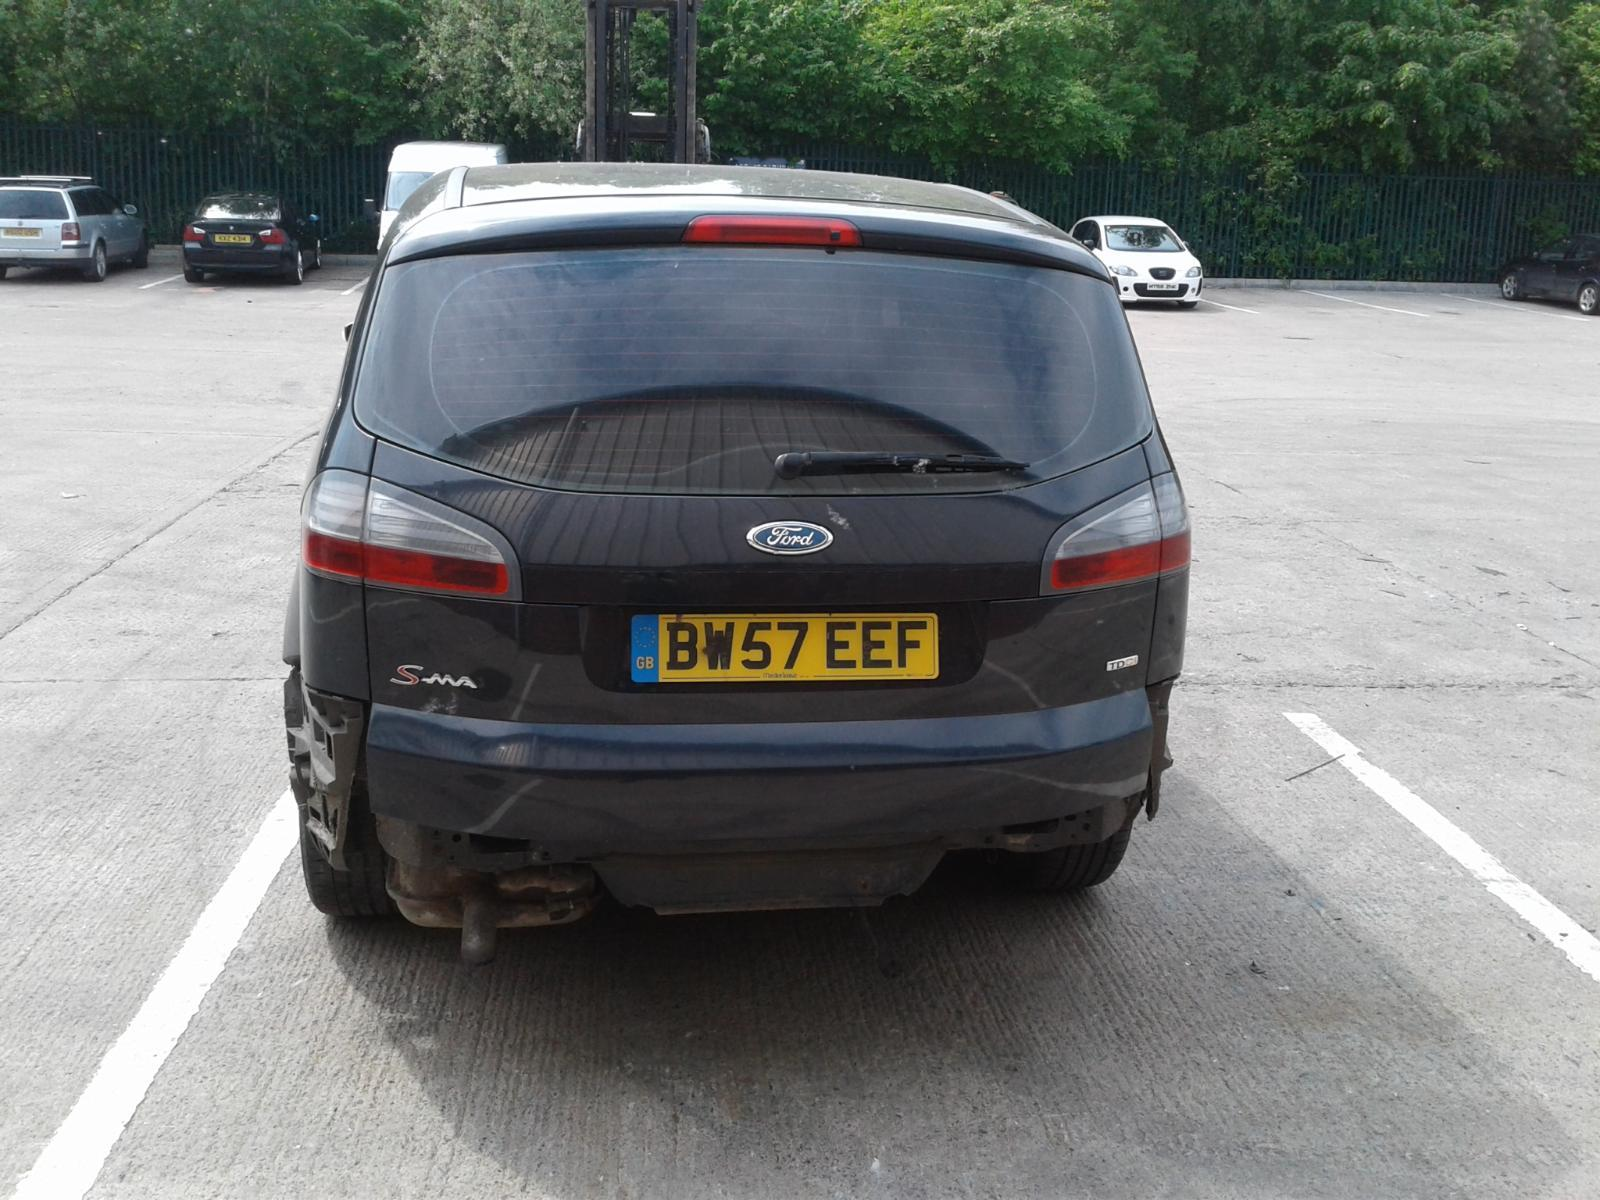 2008 Ford S MAX LX TDCI Image